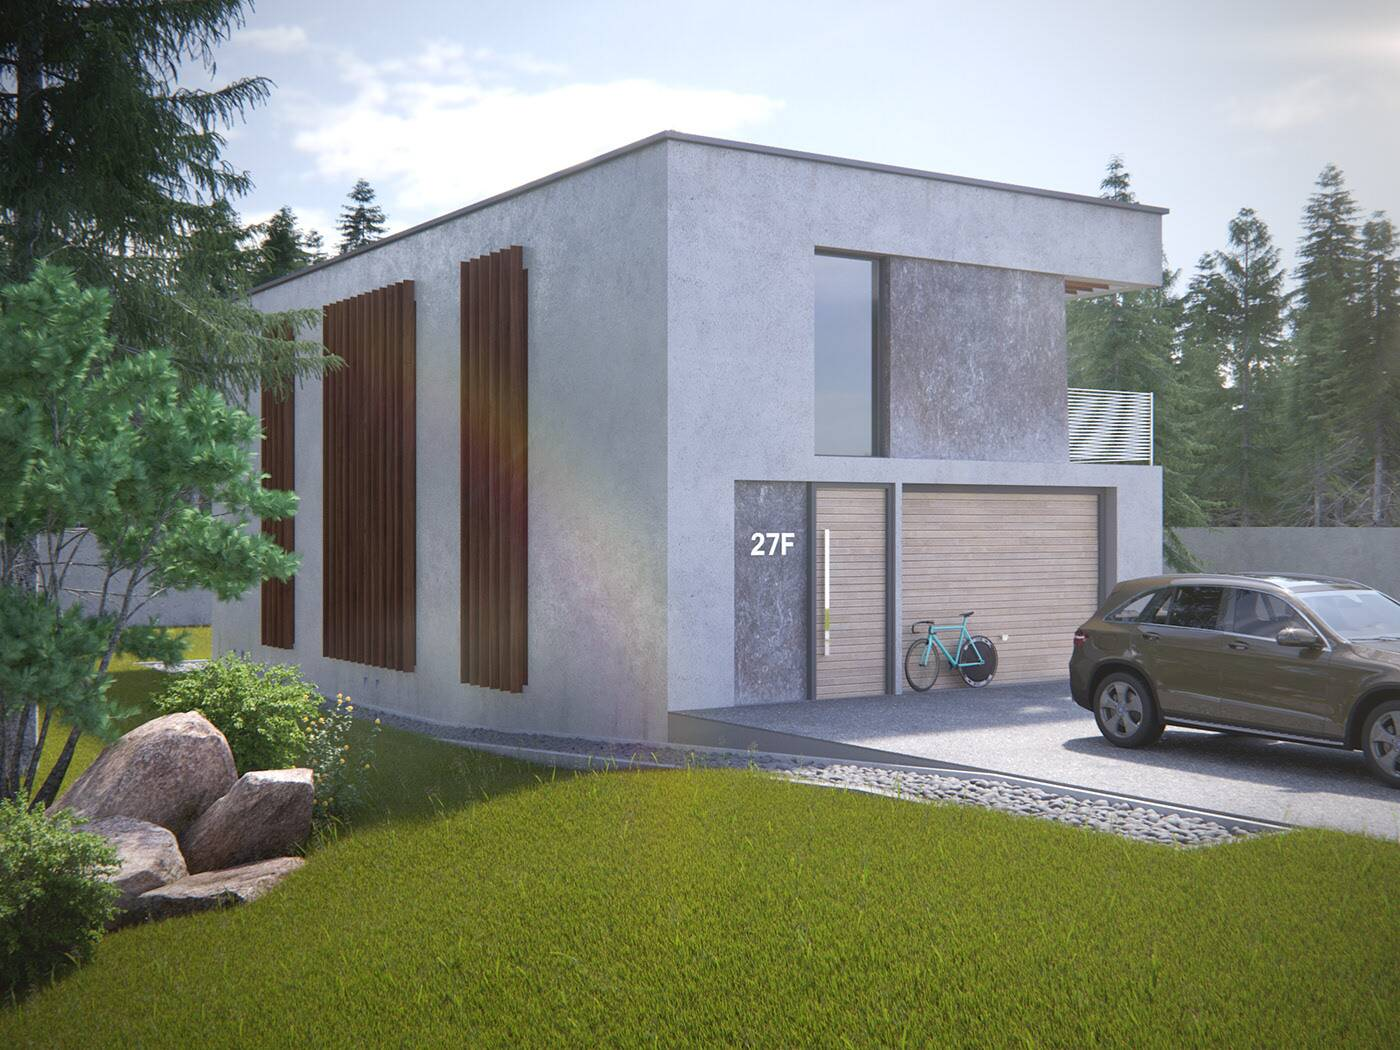 Photorealistic House Render For Architecture And Interior Design 3d Infographics 360º Rendering Render Interiores